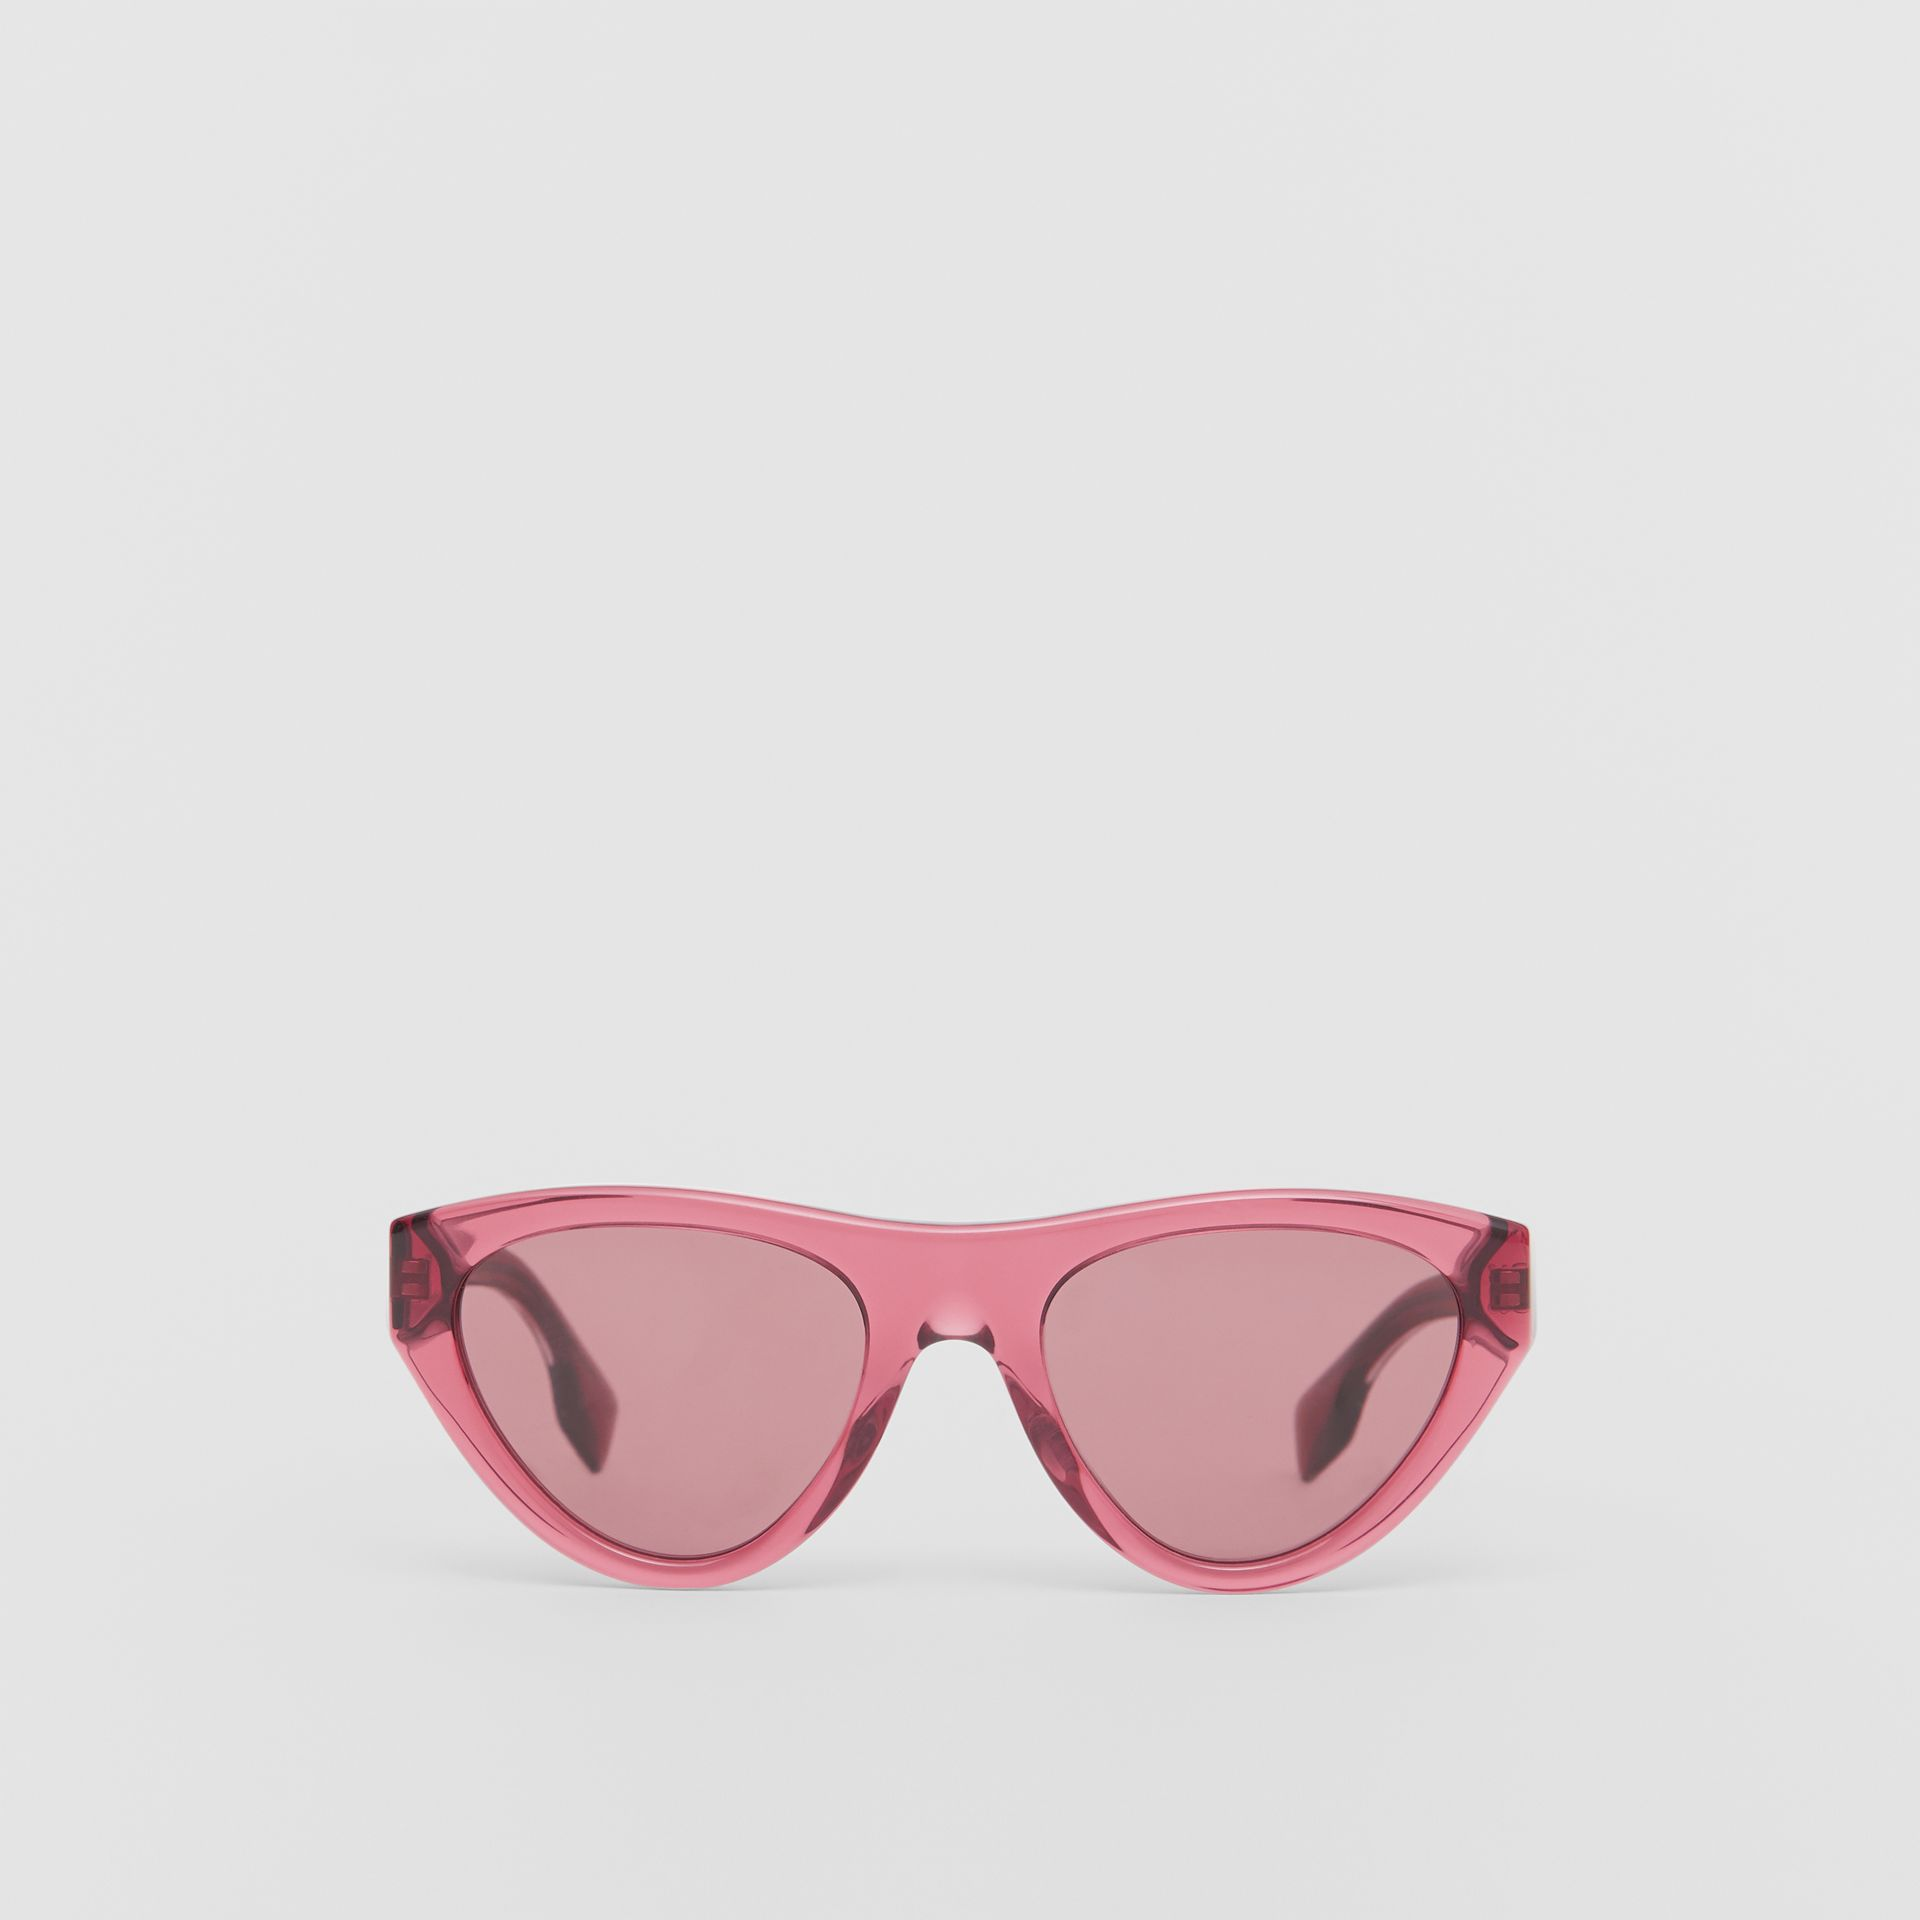 Triangular Frame Sunglasses in Cranberry - Women | Burberry United Kingdom - gallery image 0